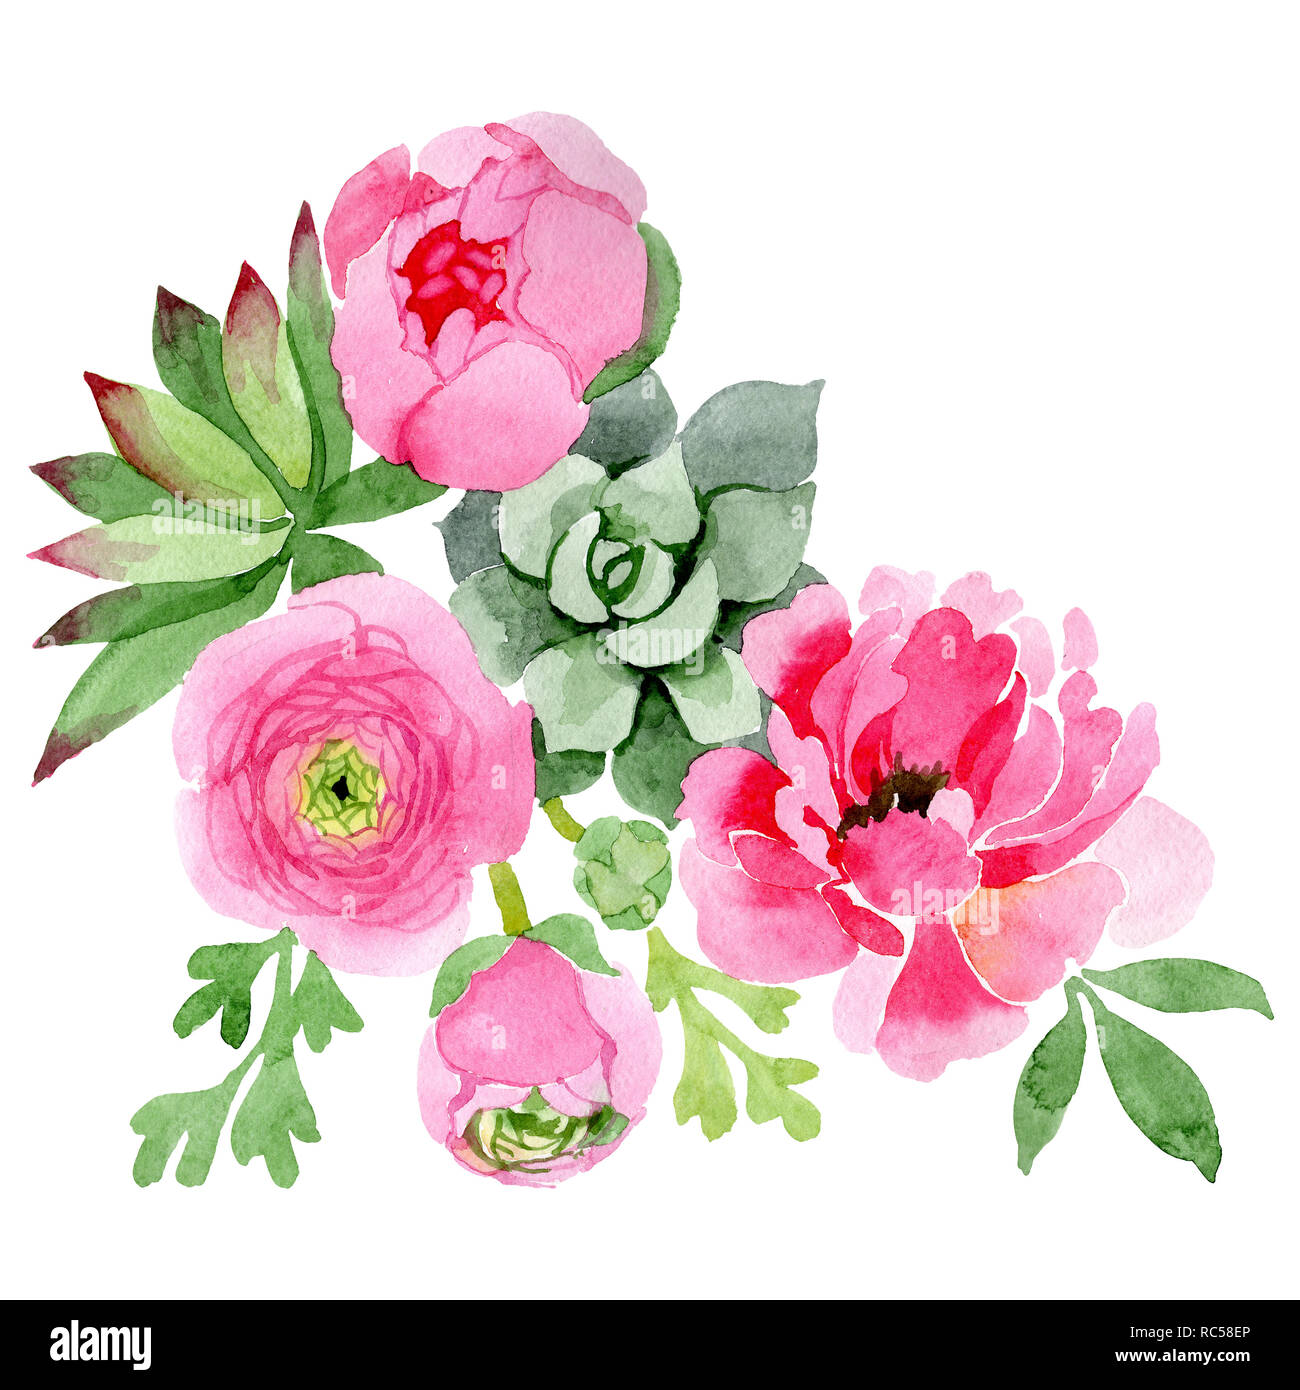 Pink Ranunculus And Peony Floral Botanical Flower Watercolor Background Set Isolated Bouquet Illustration Element Stock Photo Alamy